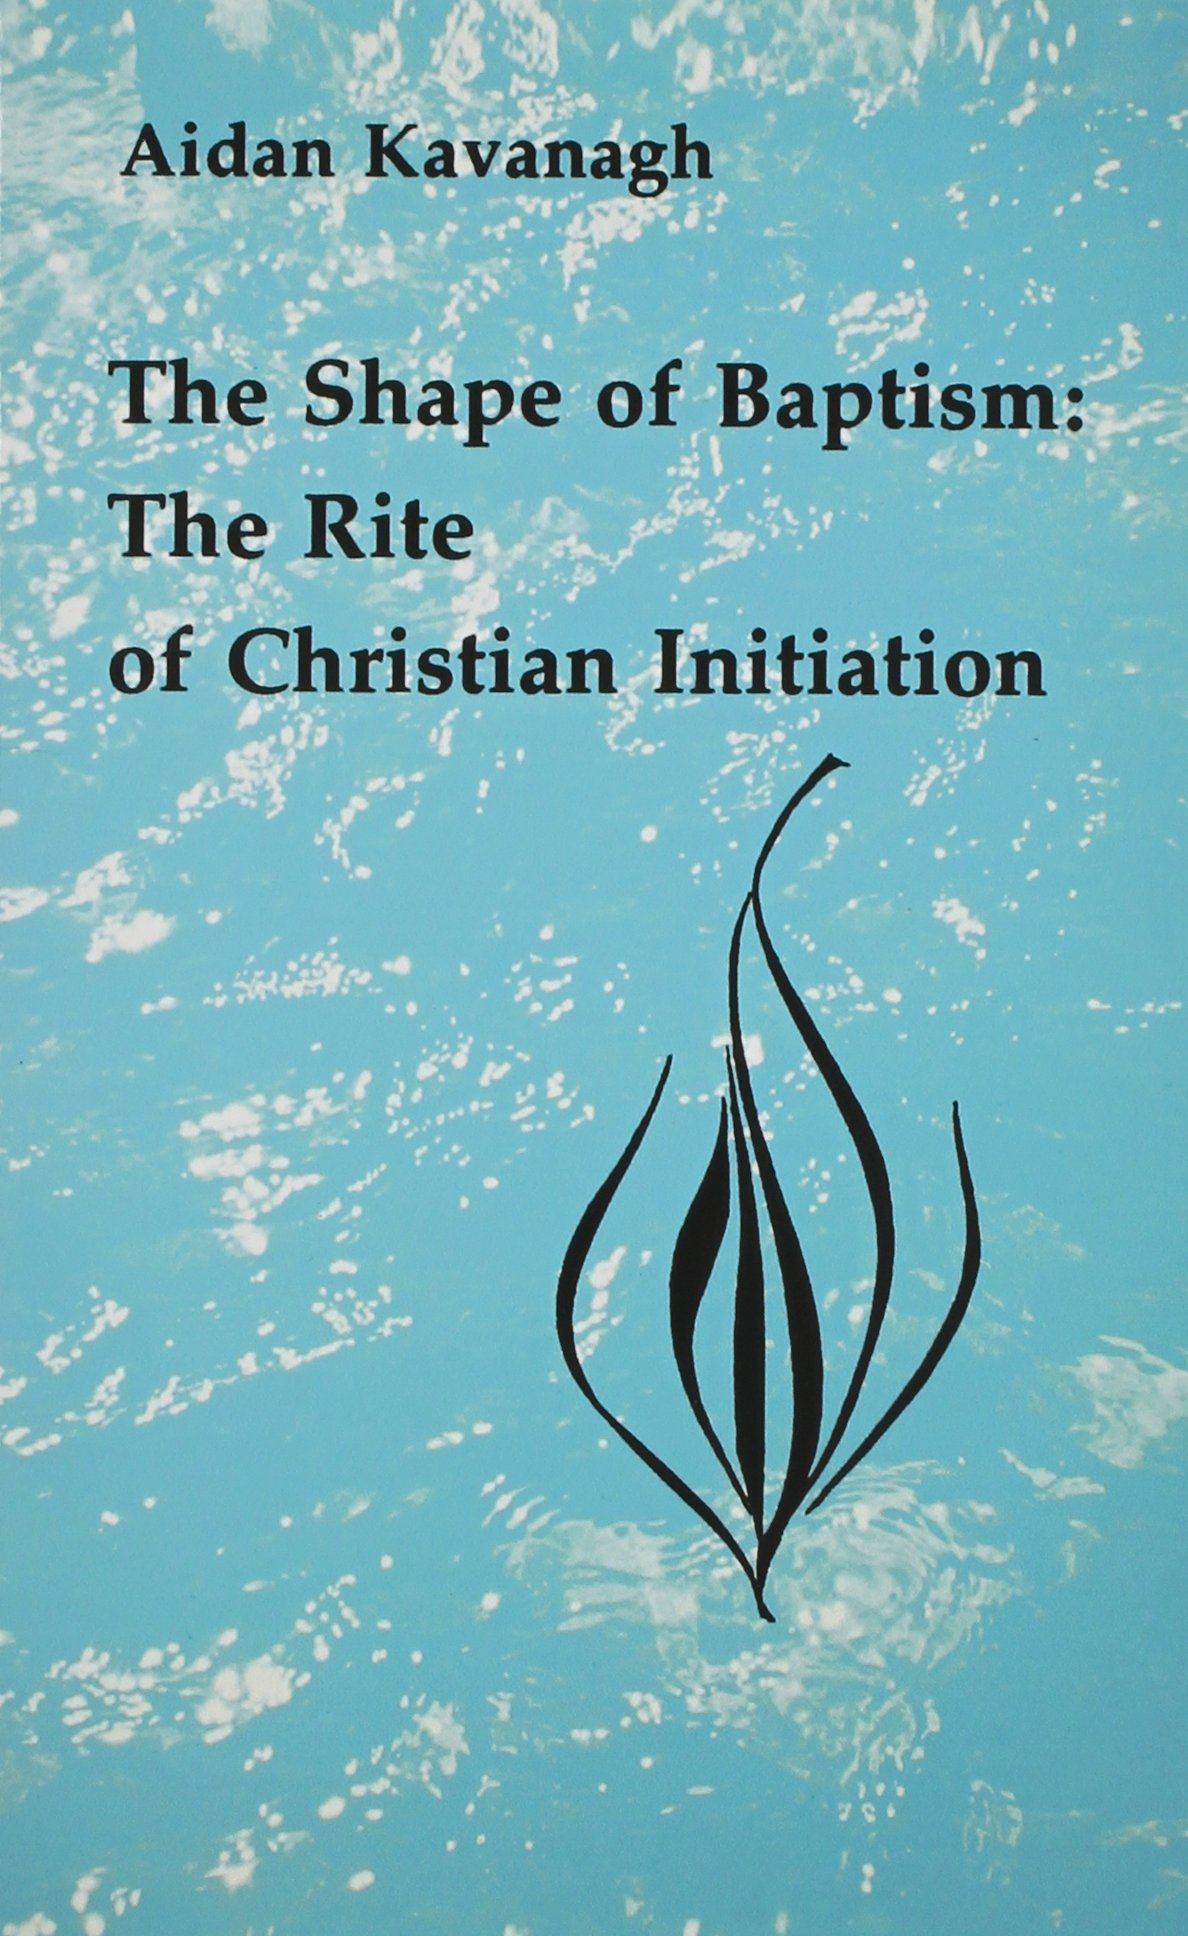 The Shape of Baptism: The Rite of Christian Initiation (Studies in the Reformed Rites of the Catholic Church, V. 1) by Pueblo Books